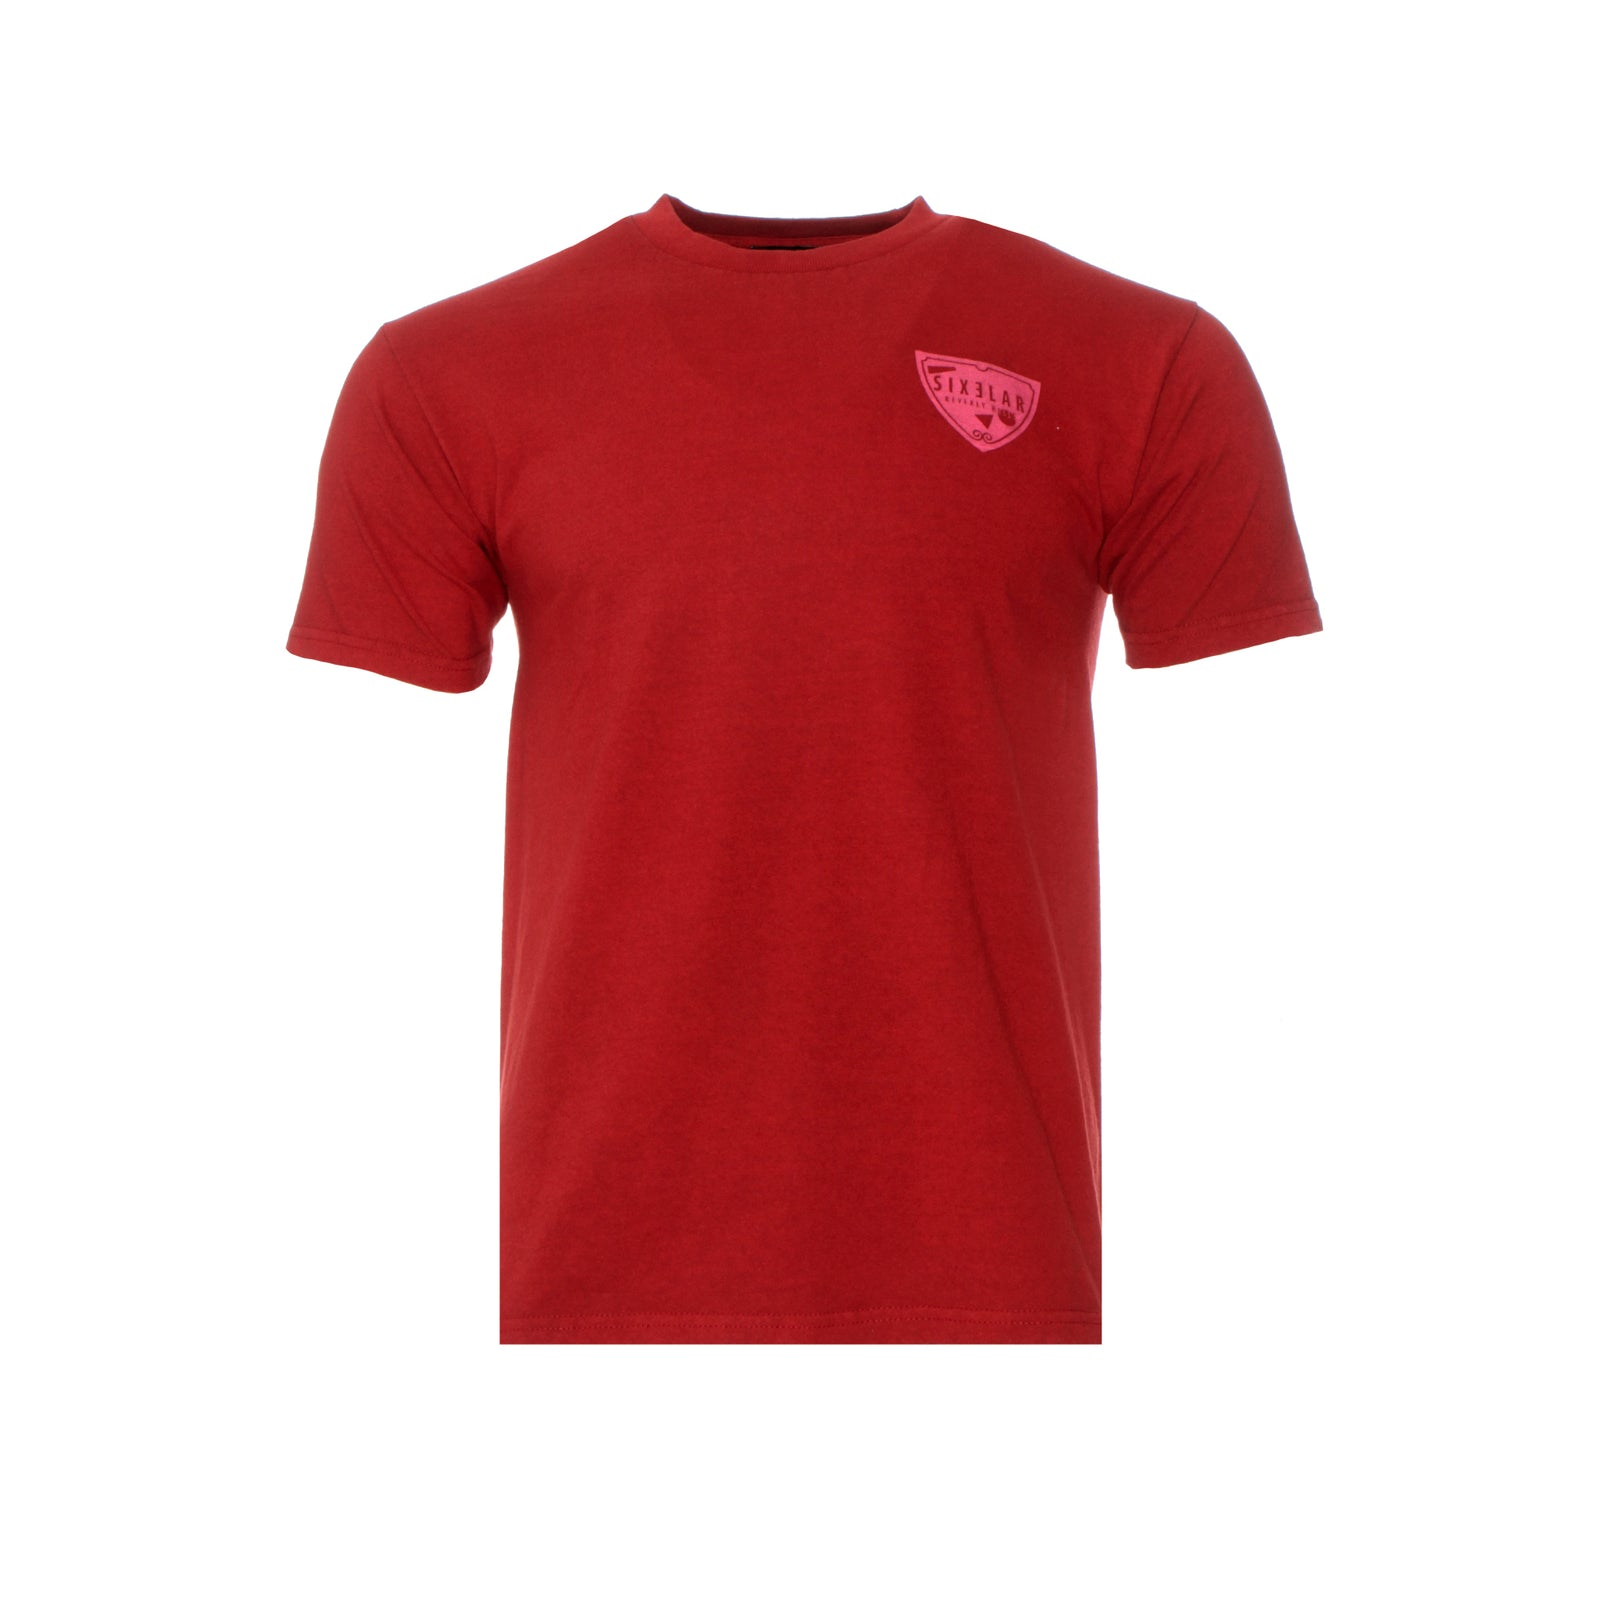 Sixelar Mau Red SS Men's Graphic Tee Red